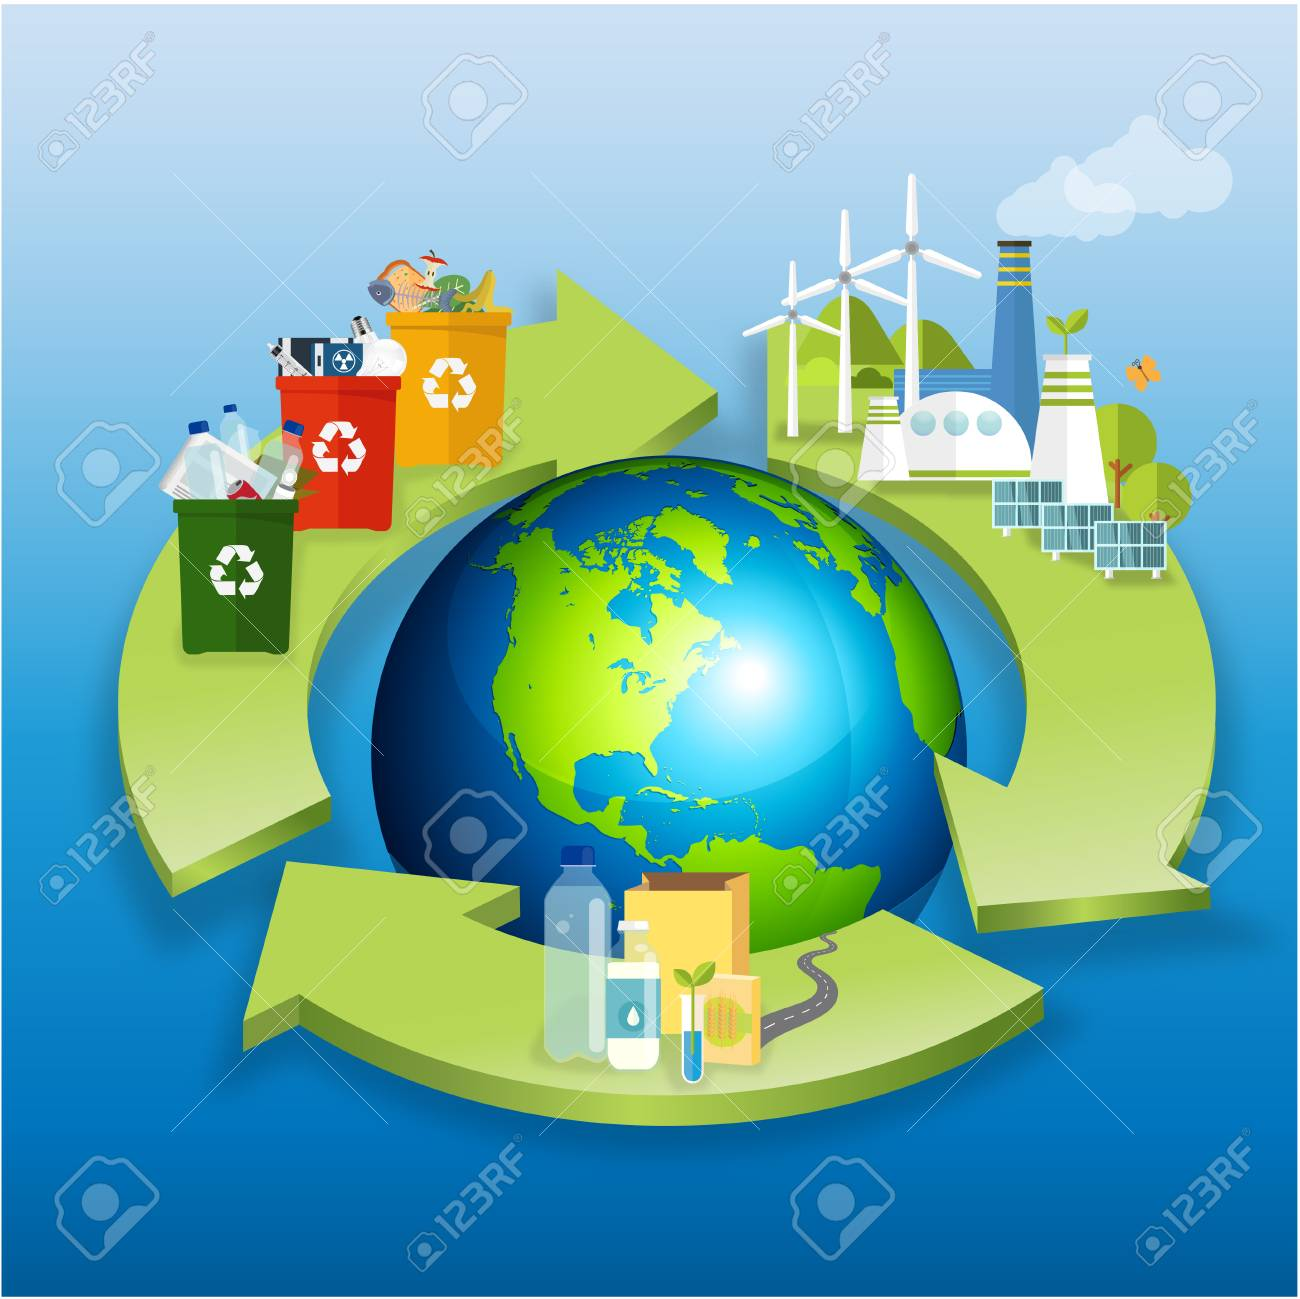 circular economy. product is recycled. management concept. - 121182804